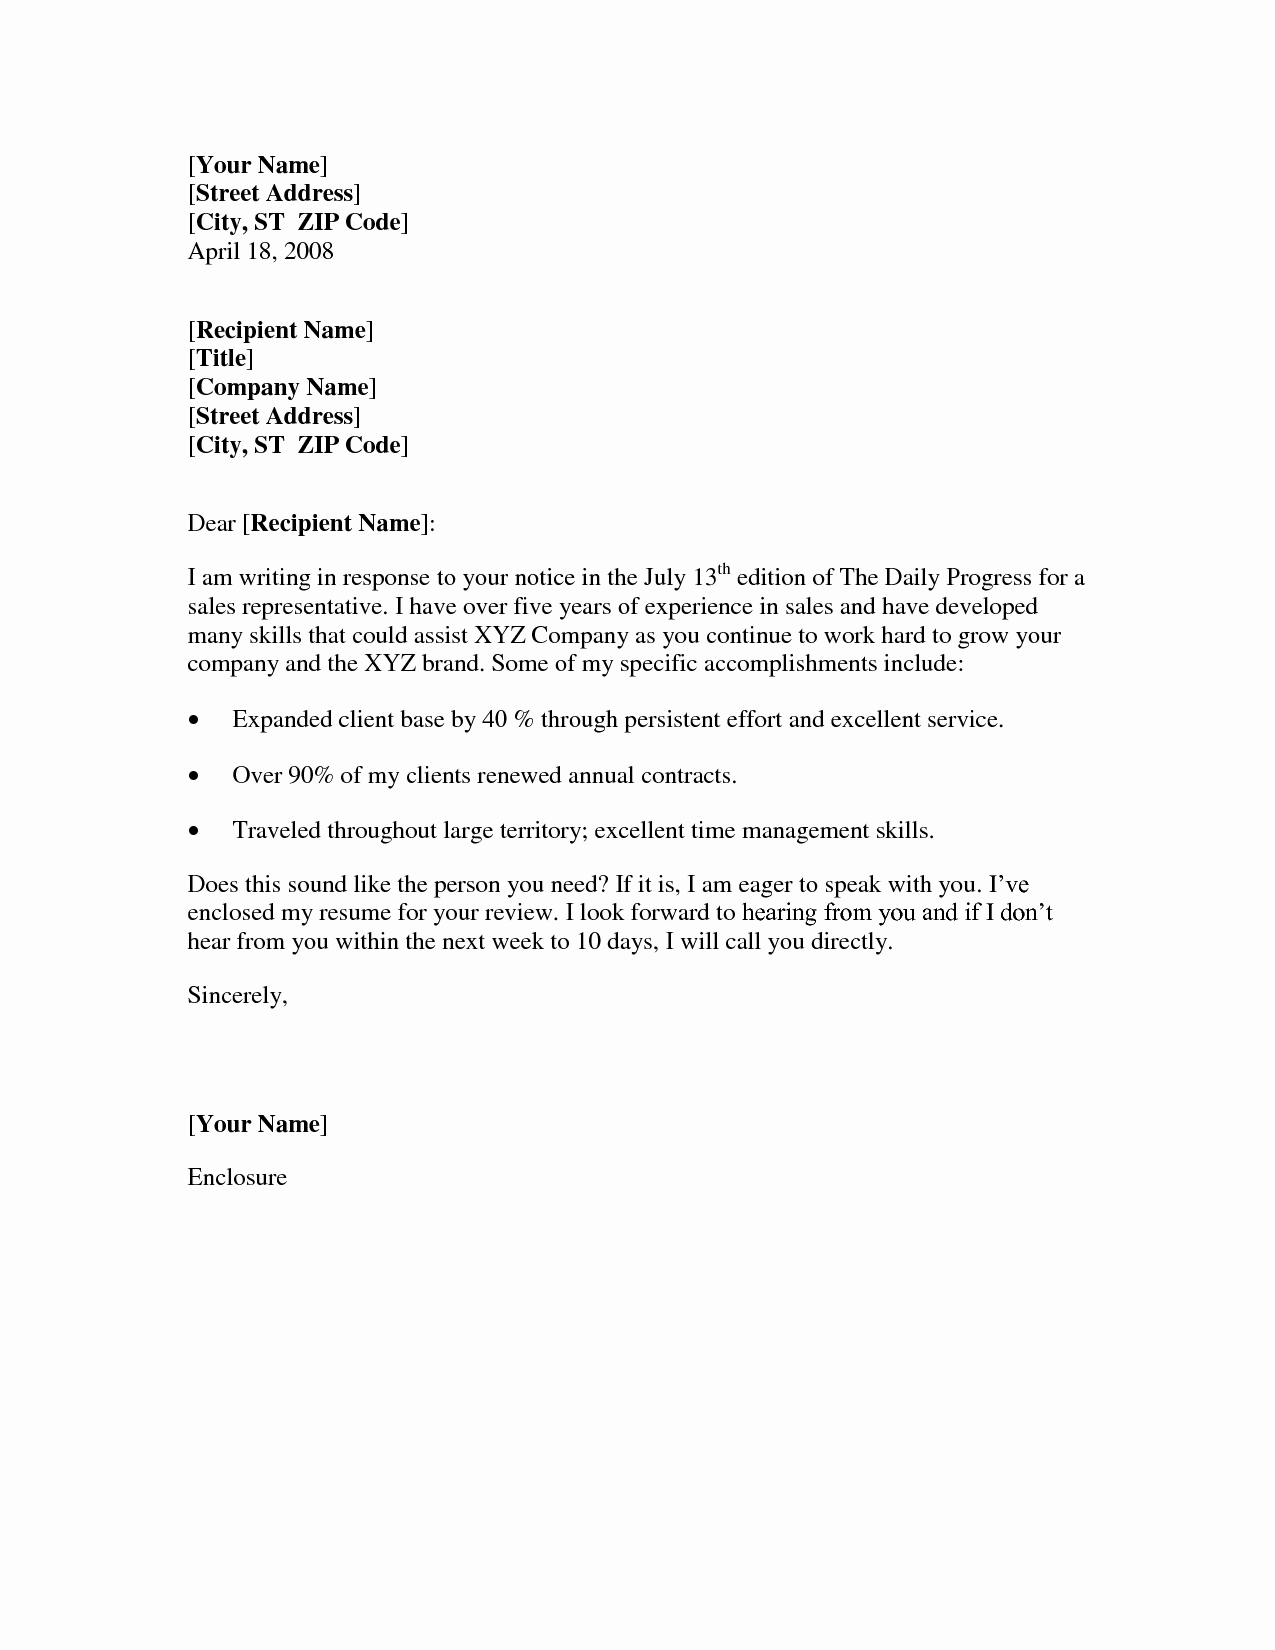 Basic Resume Cover Letter Examples Unique 10 Best Of Basic Cover Letter for Resume Sample